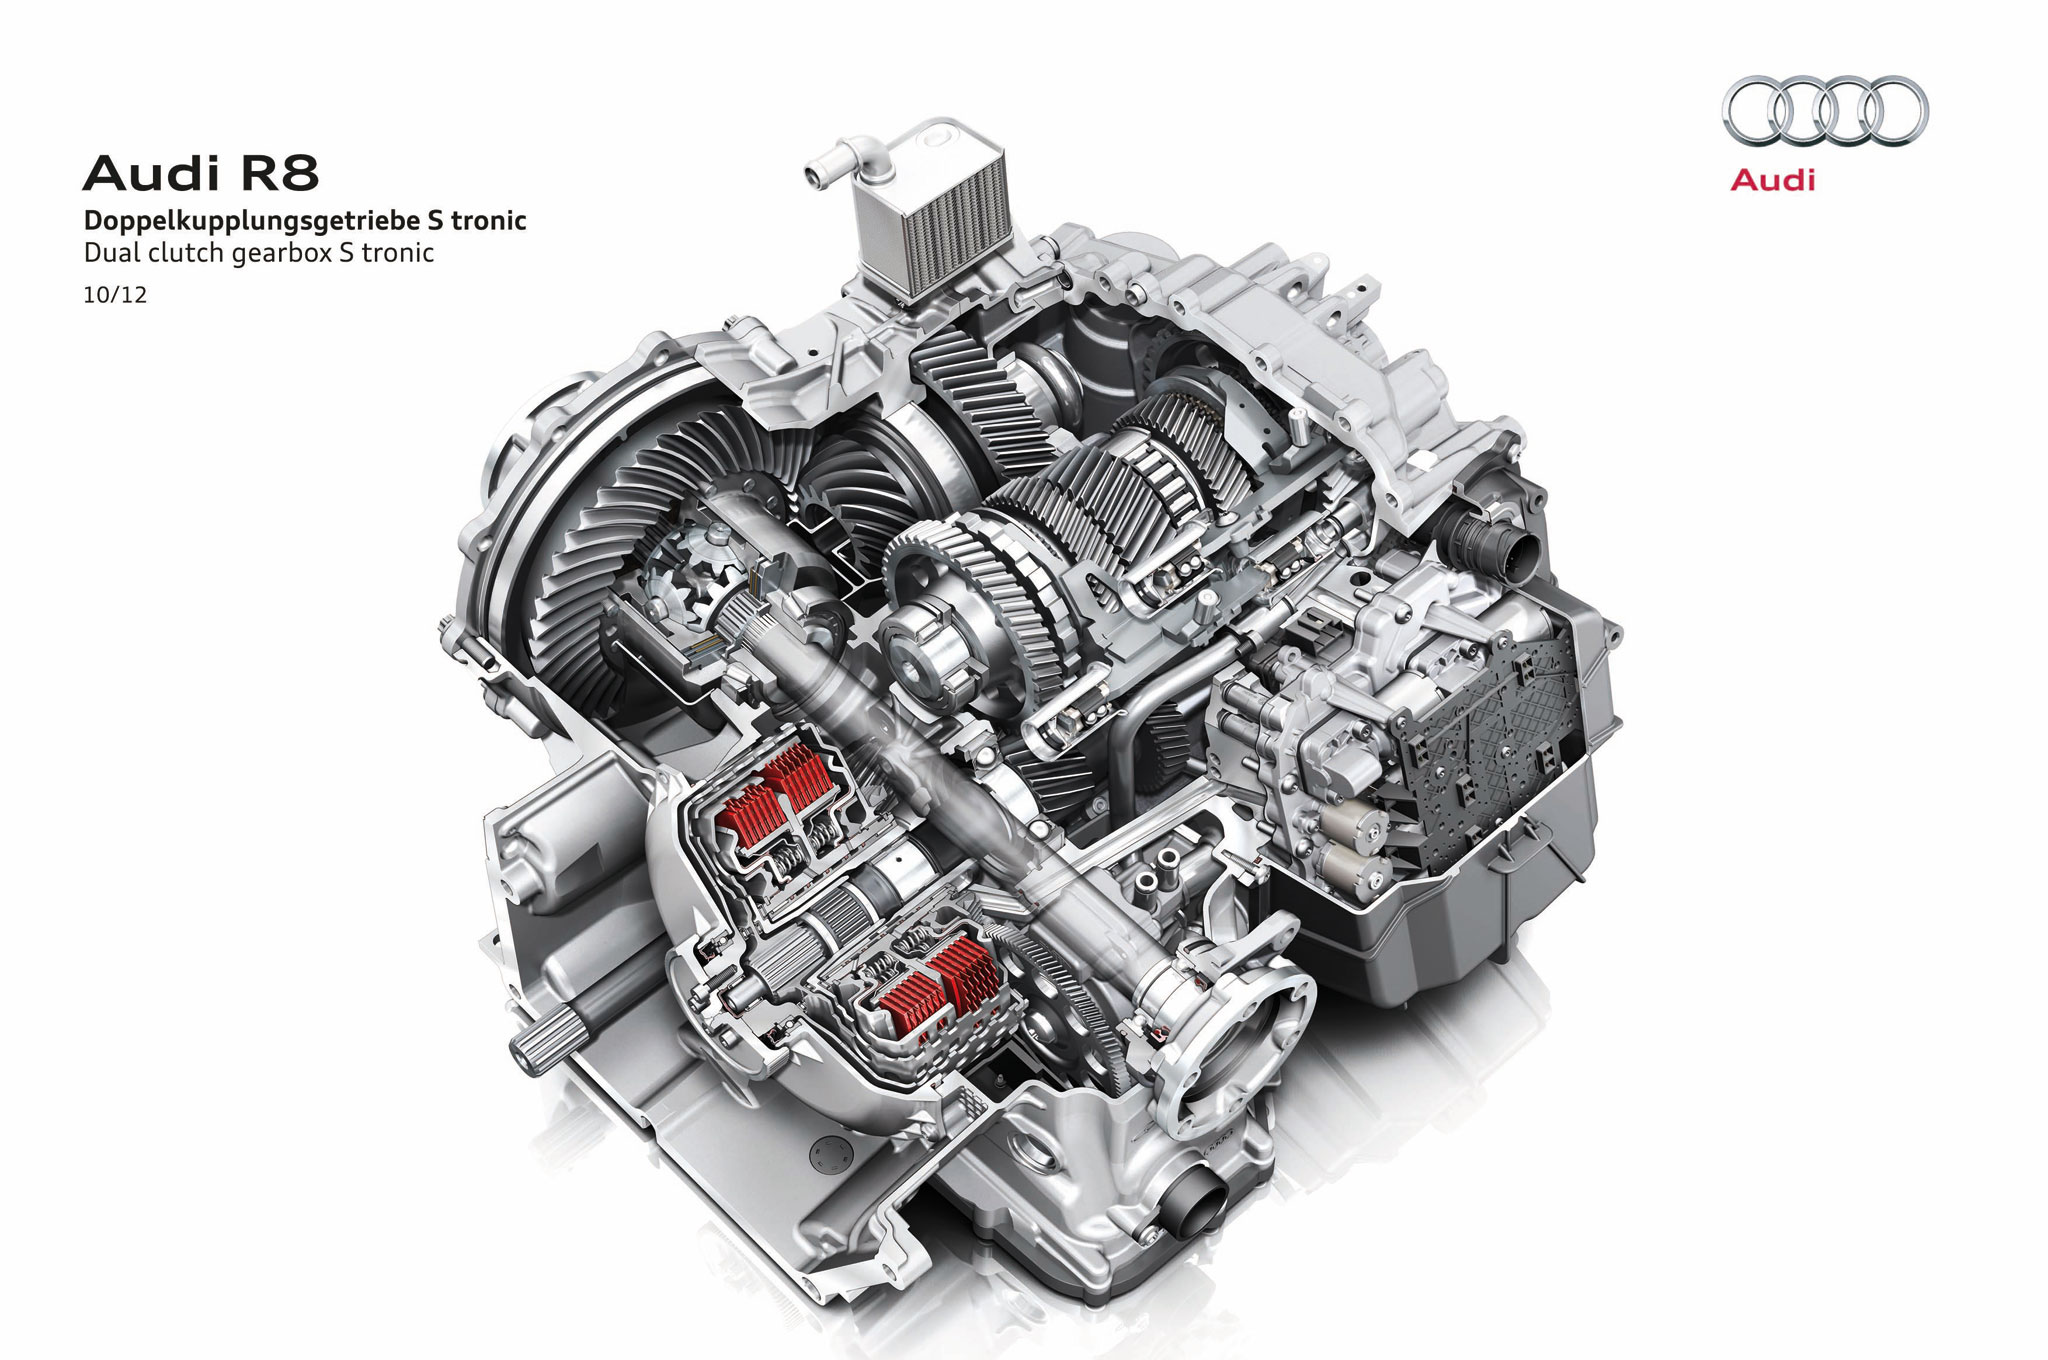 Audi R8 Spyder Engine Diagram Great Installation Of Wiring Blueprints Ford Mustang Drivetrain Simple Post Rh 1 Asiagourmet Igb De 2012 Gt Shelby Gt350 Production